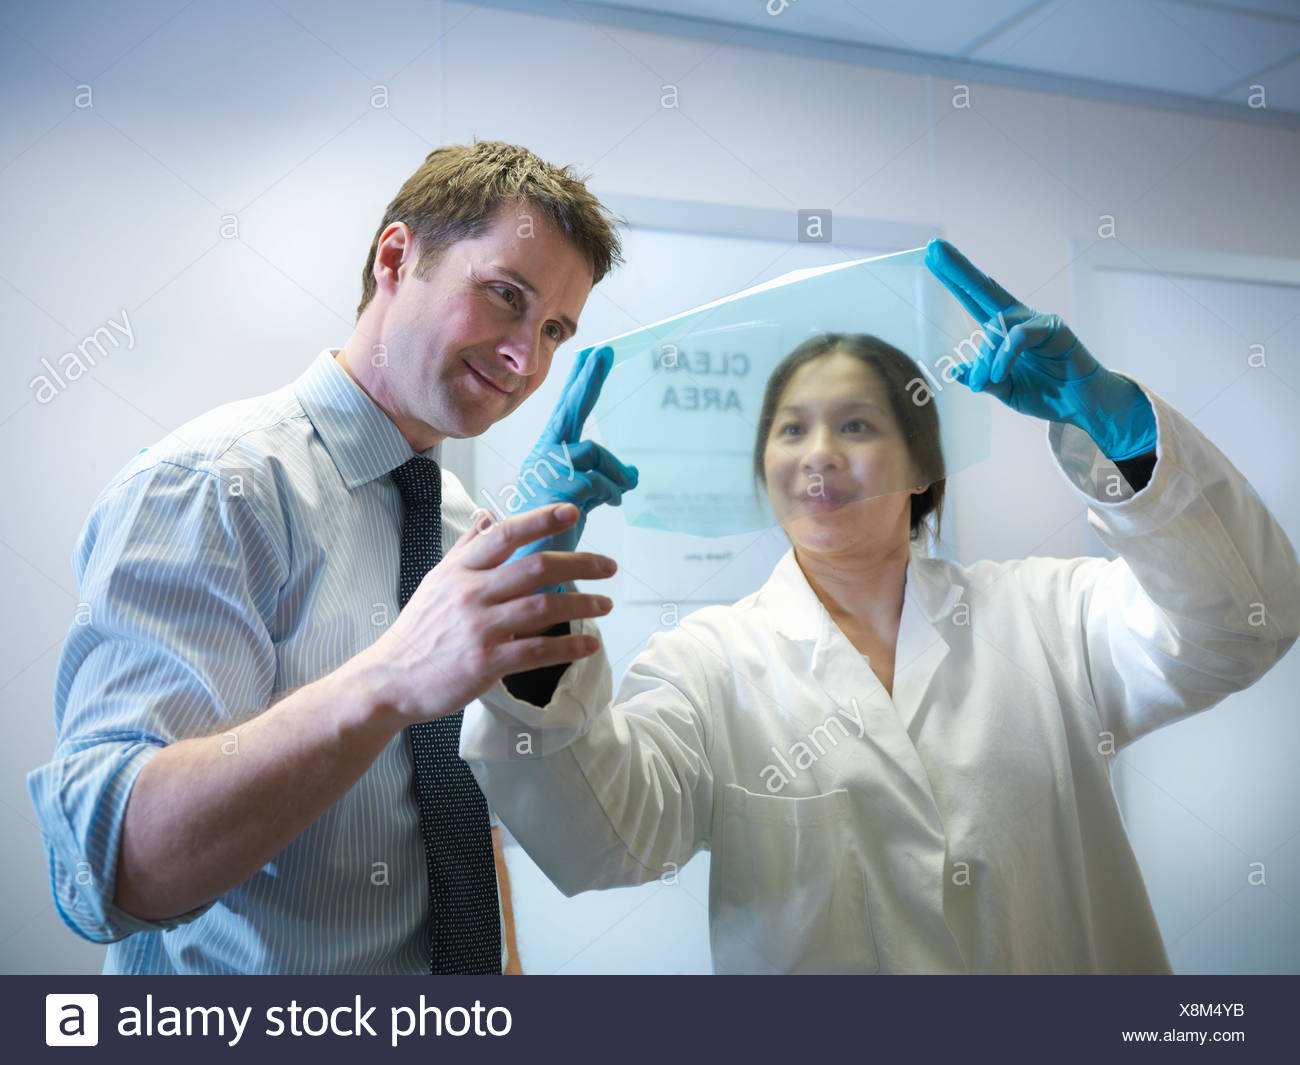 Scientists with finished product Stock Photo